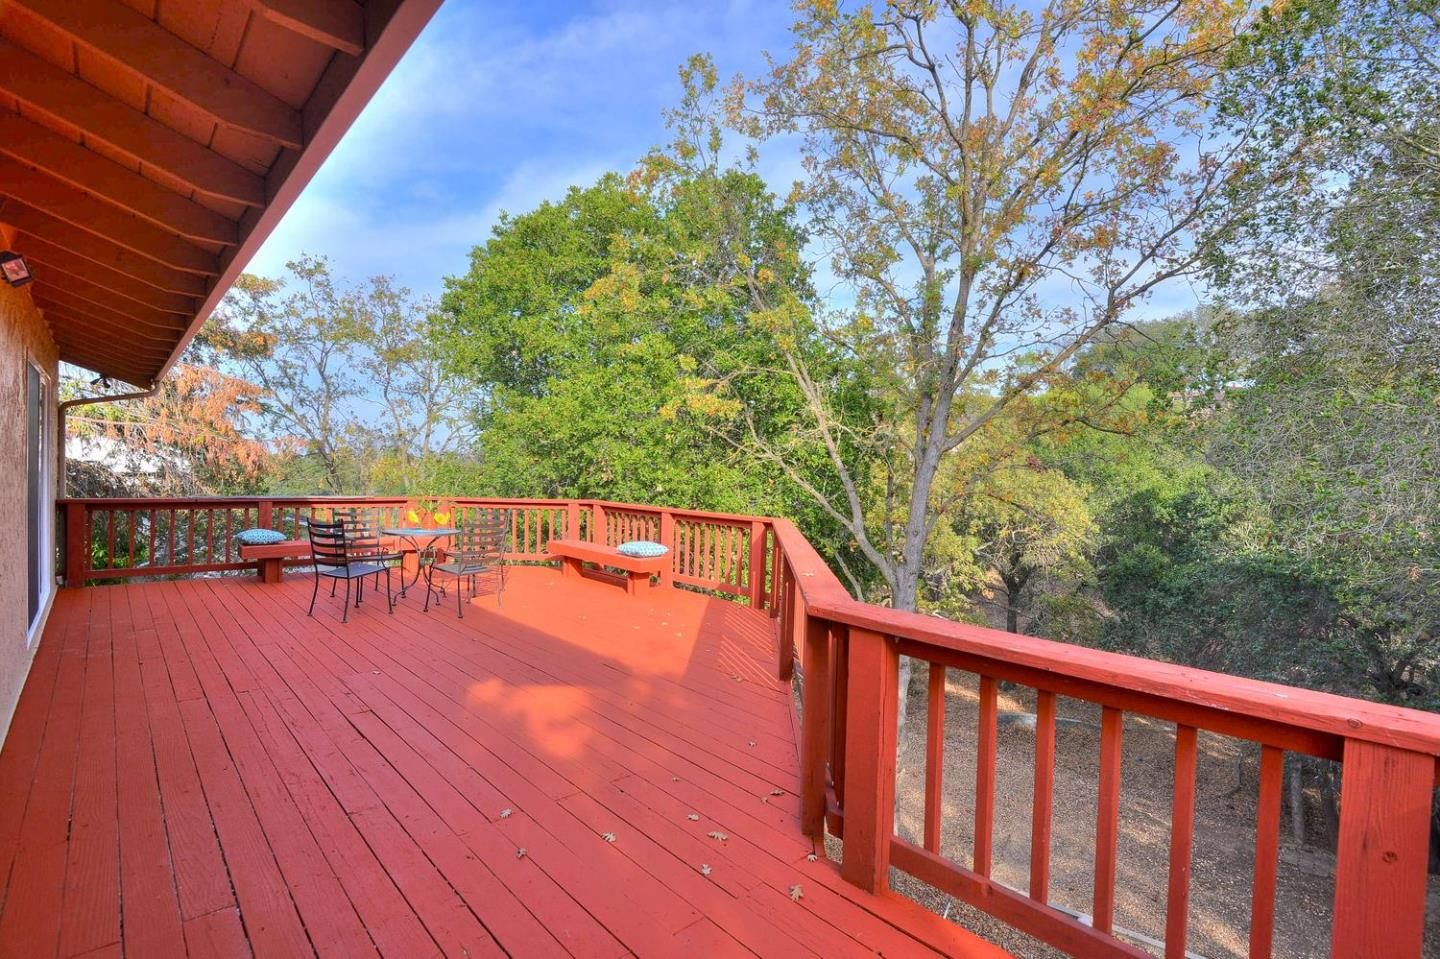 Additional photo for property listing at 14292 Old Wood  SARATOGA, CALIFORNIA 95070